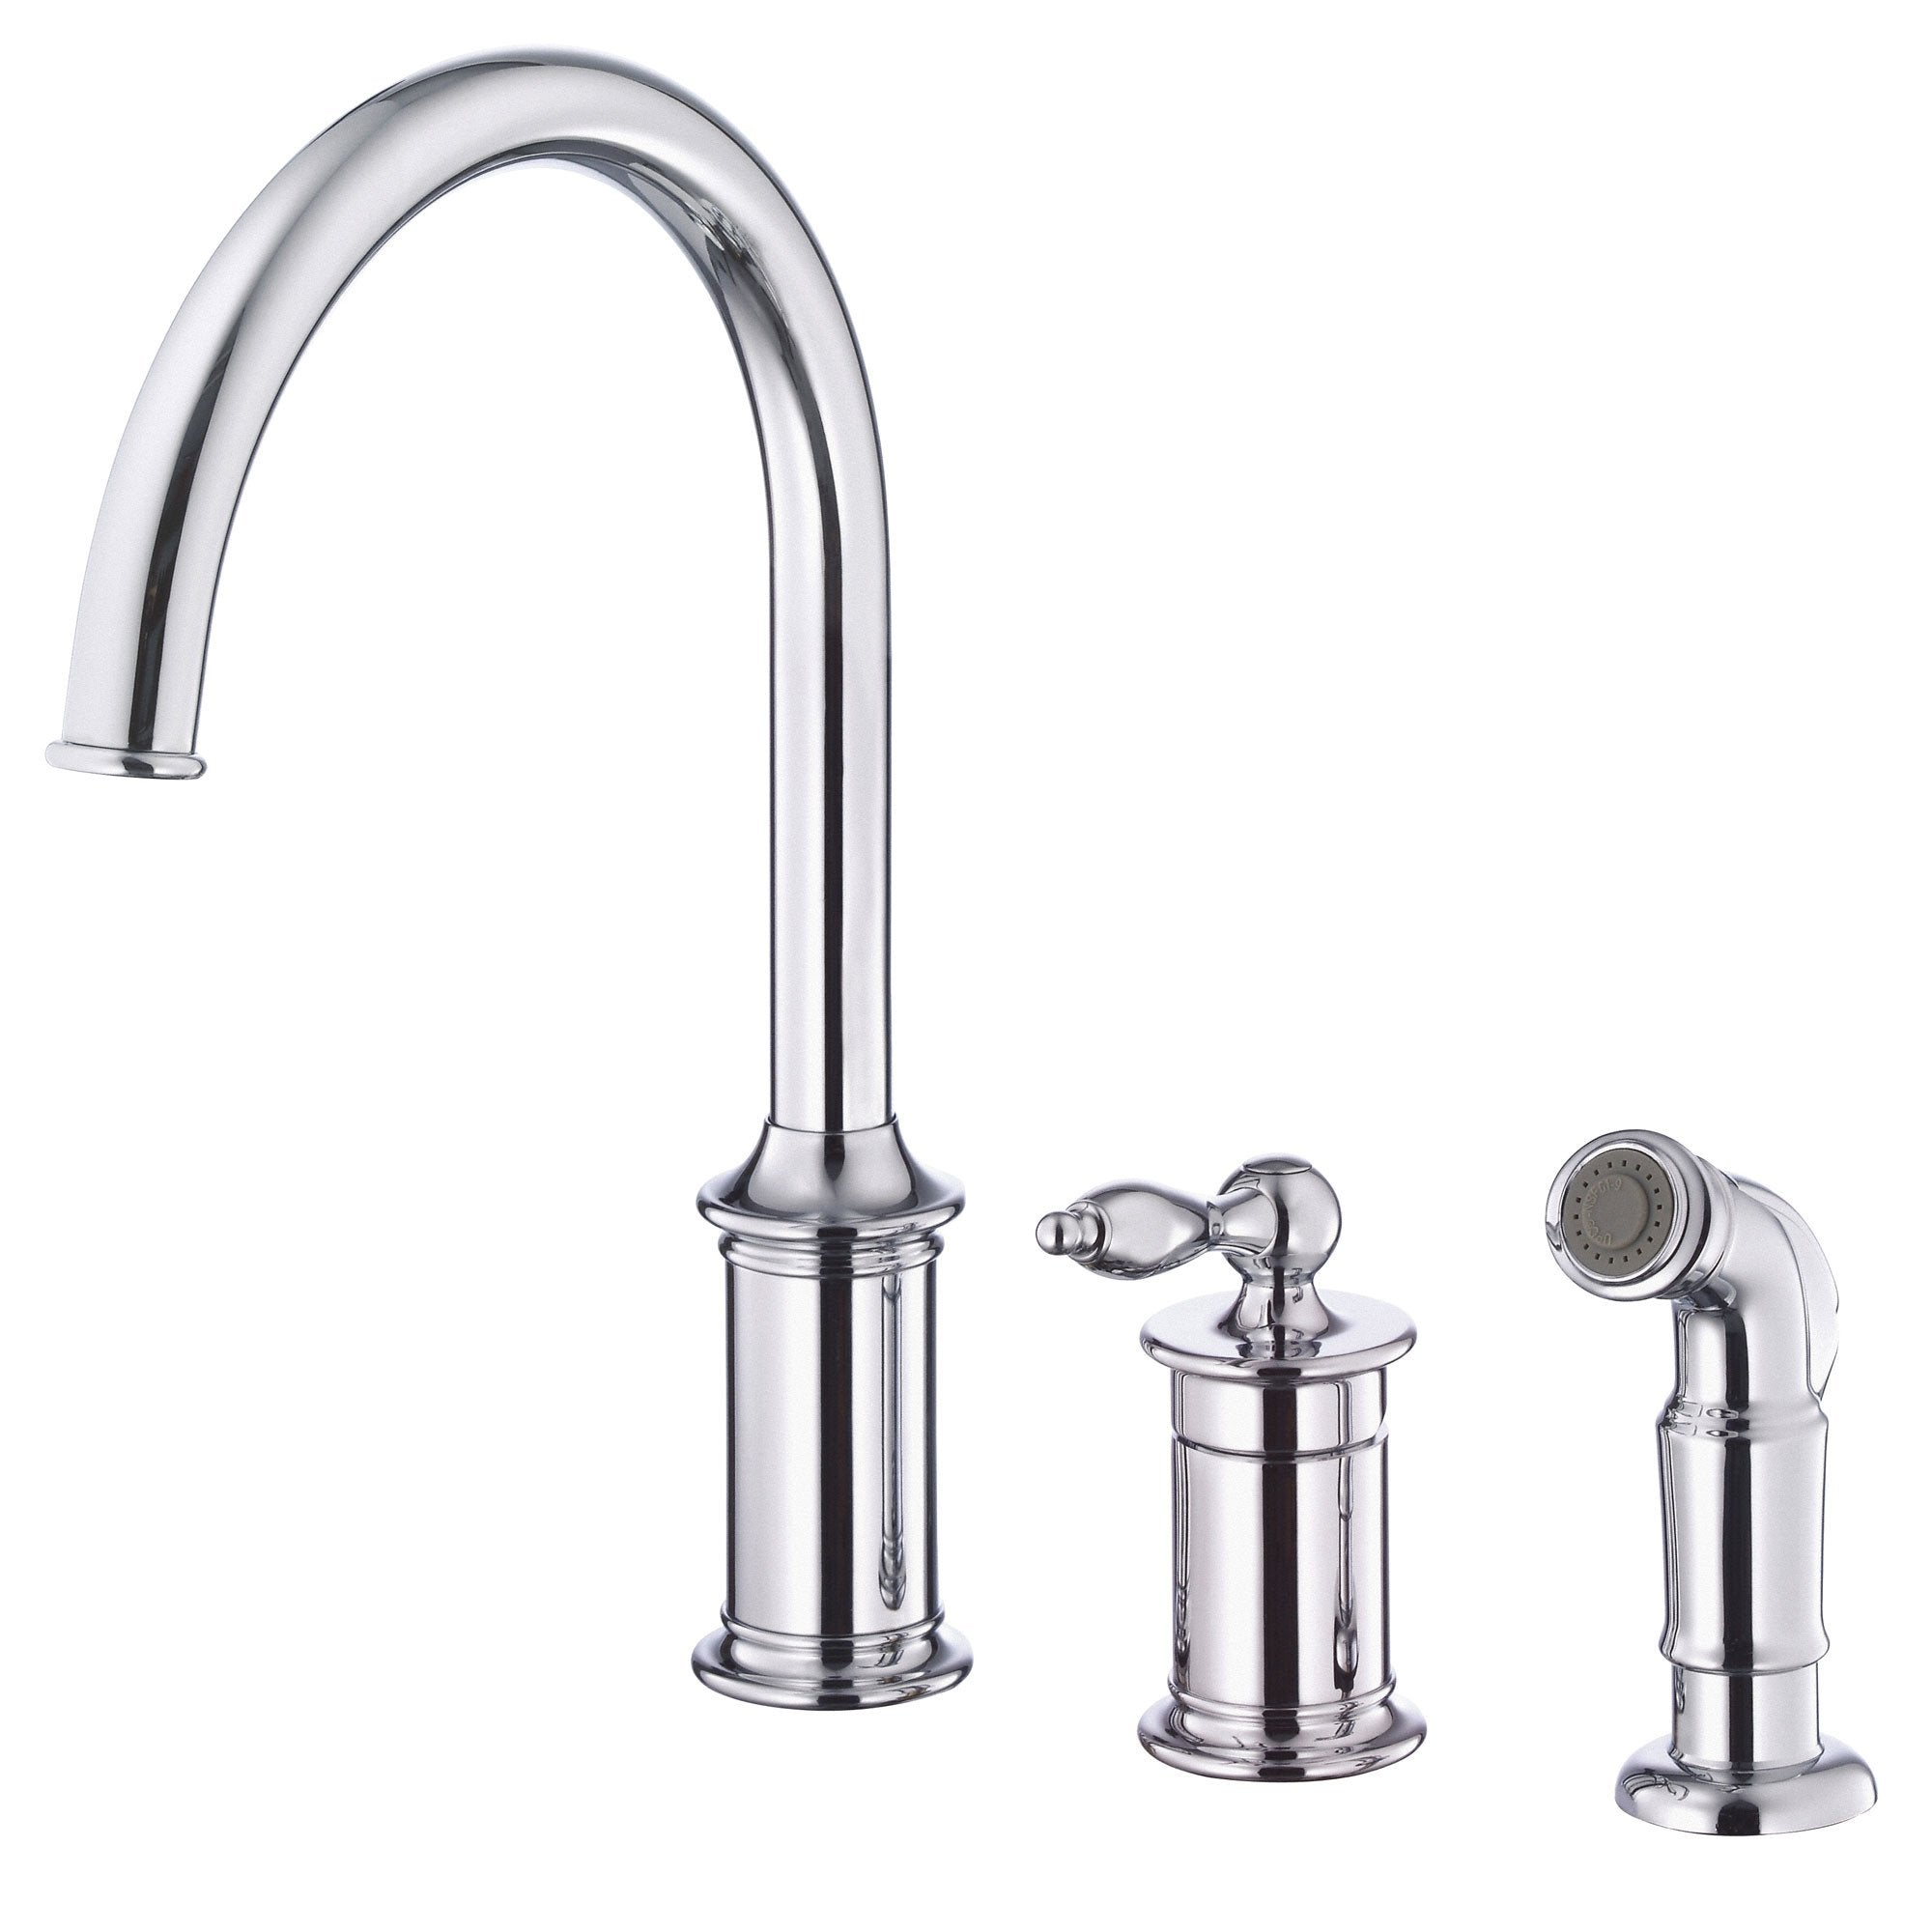 danze prince chrome single handle 3 hole widespread kitchen faucet with sprayer 3 piece kitchen faucet Danze Prince Chrome Single Handle 3 Hole Widespread Kitchen Faucet with Sprayer